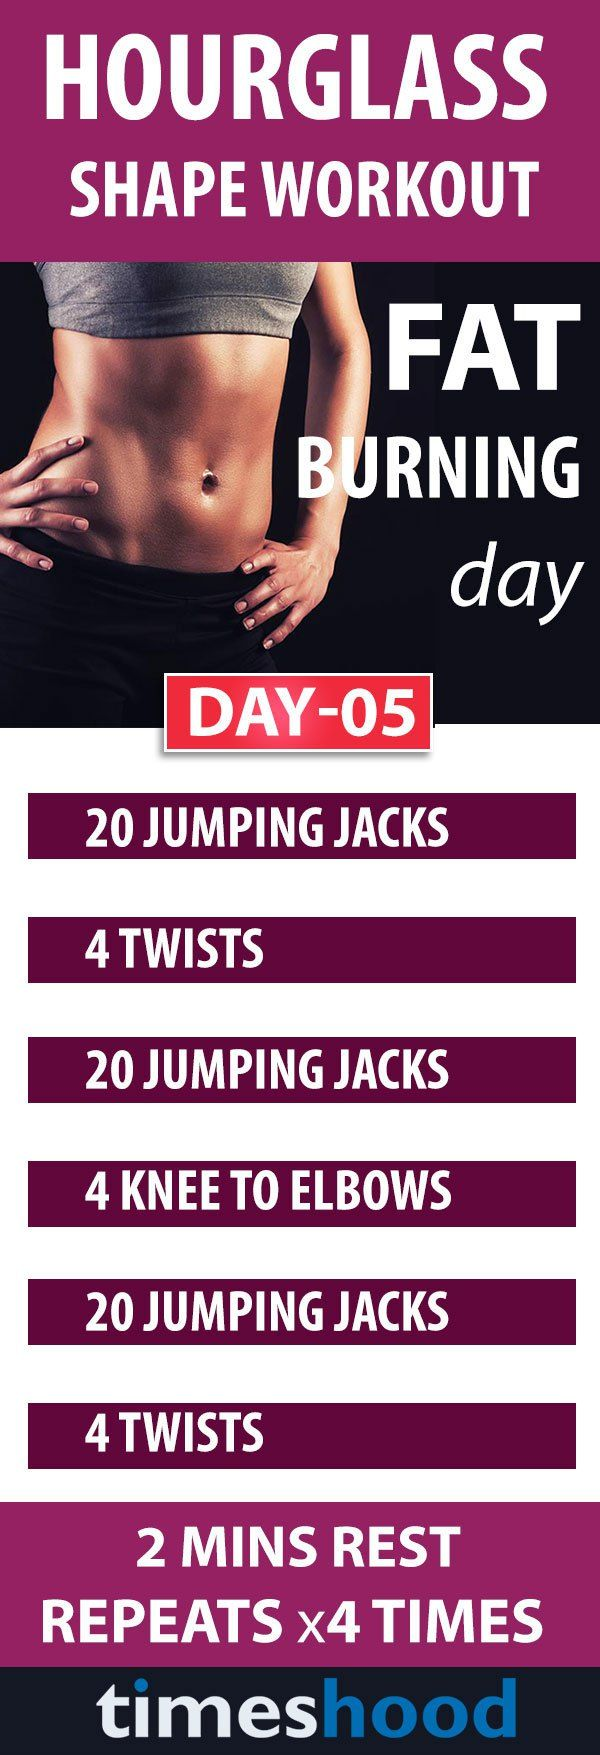 Total Body Workout: 10 Day Workout Plan to Get an Hourglass